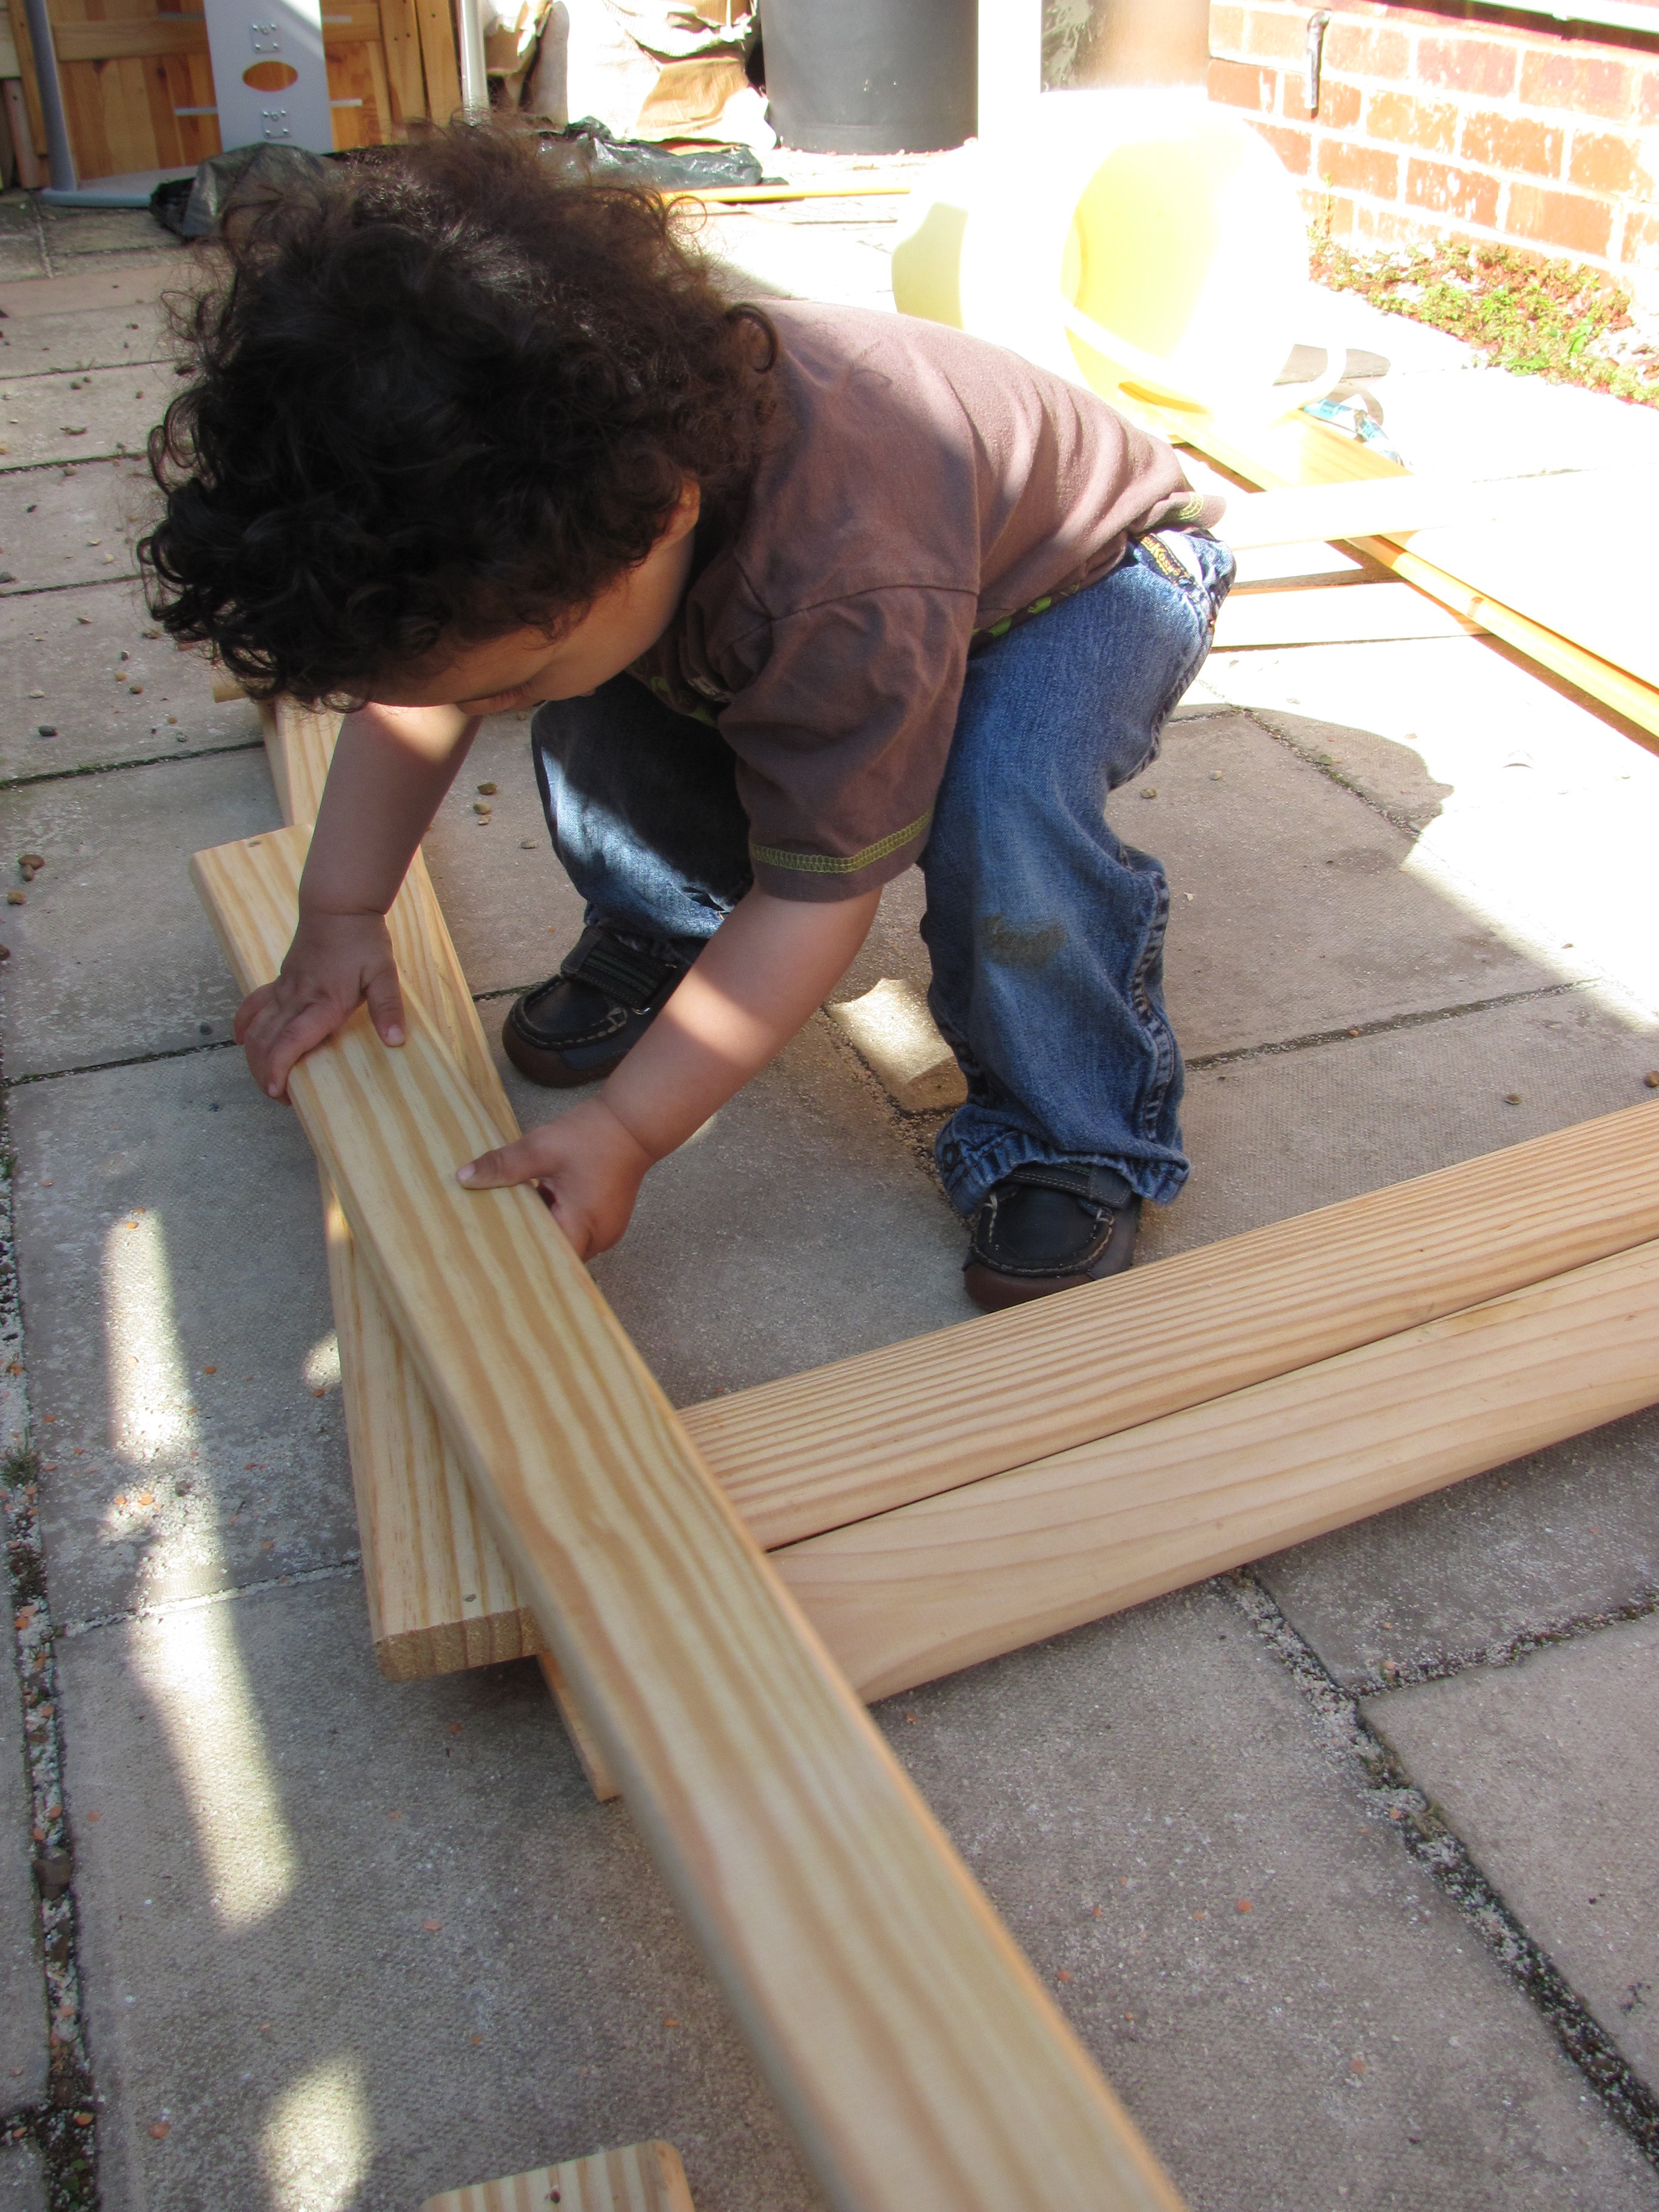 loose parts play - playing with wooden bed slats, building for large scale construction play